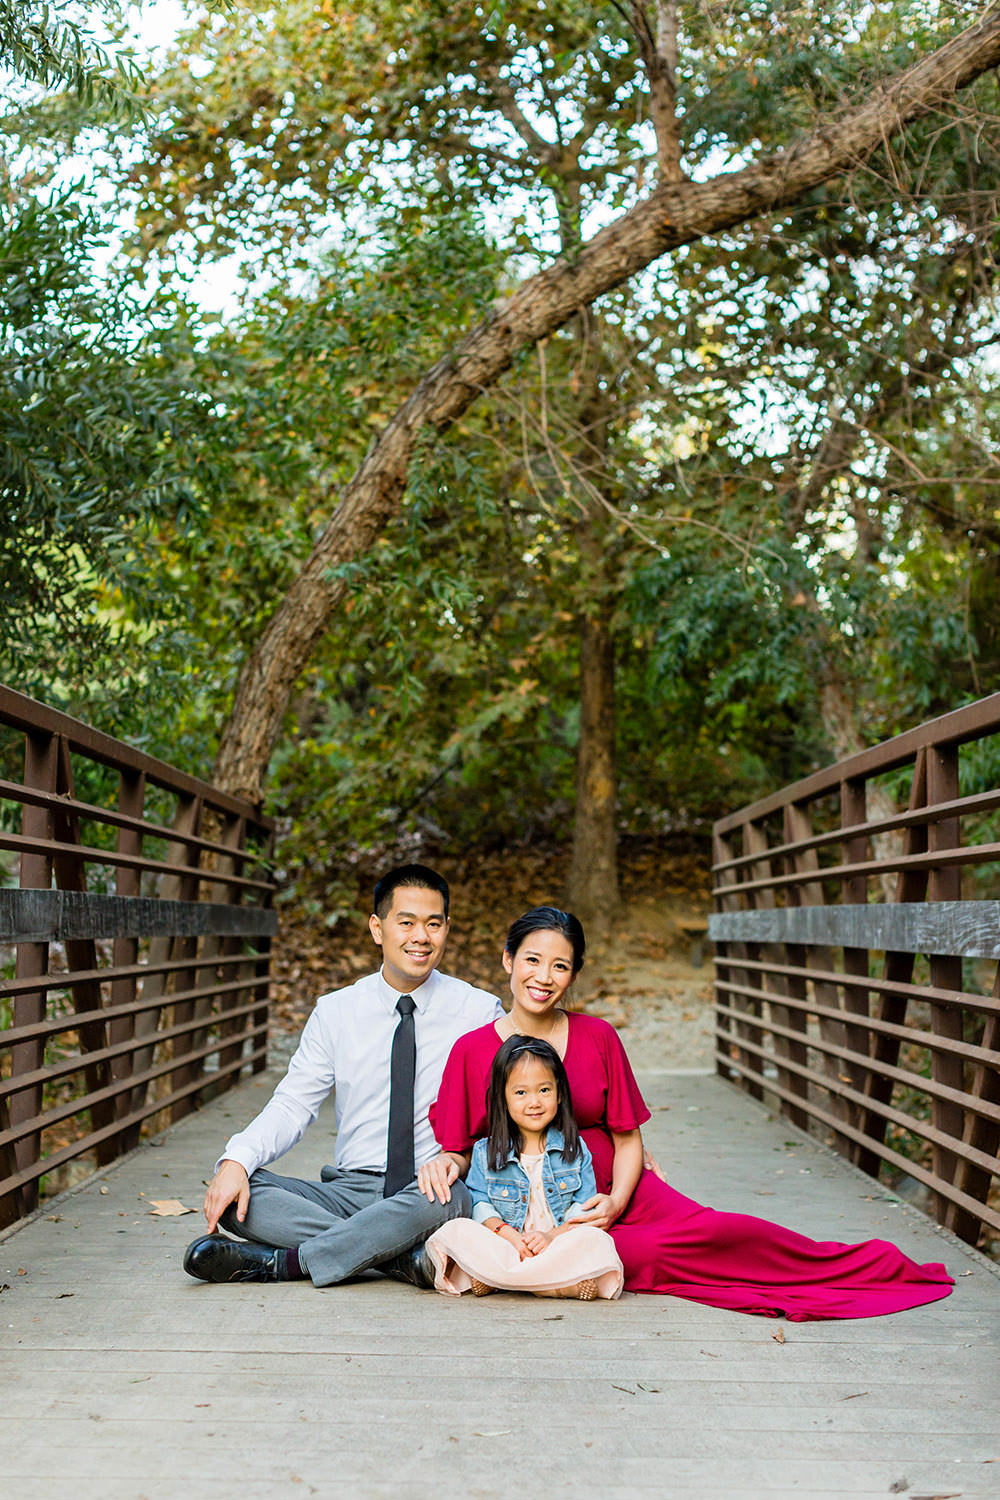 family portraits session at Chino Creek Wetlands & Educational Park in Chino Hills, California